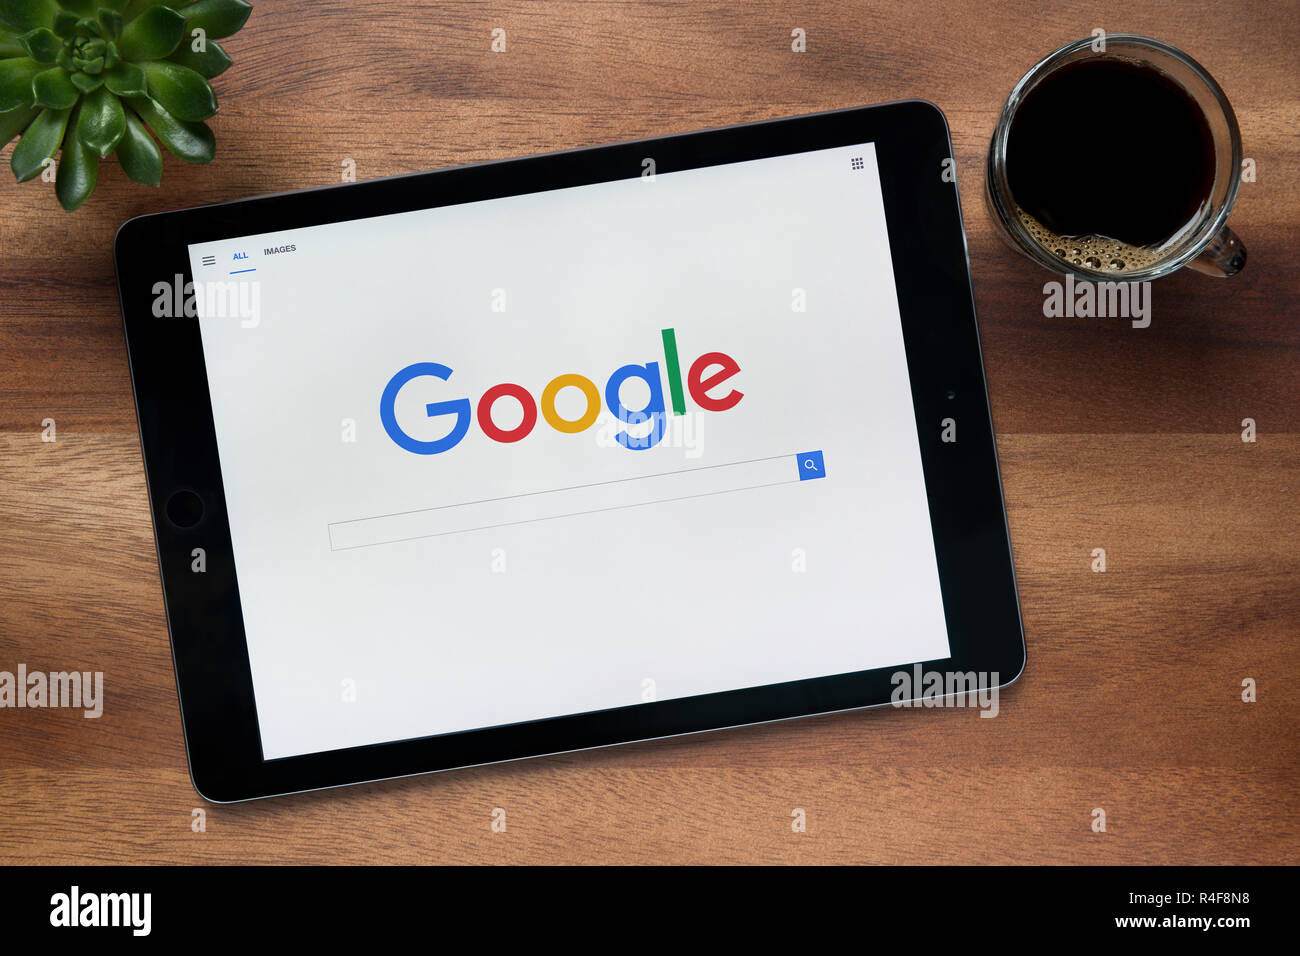 The website of Google is seen on an iPad tablet, on a wooden table along with an espresso coffee and a house plant (Editorial use only). - Stock Image